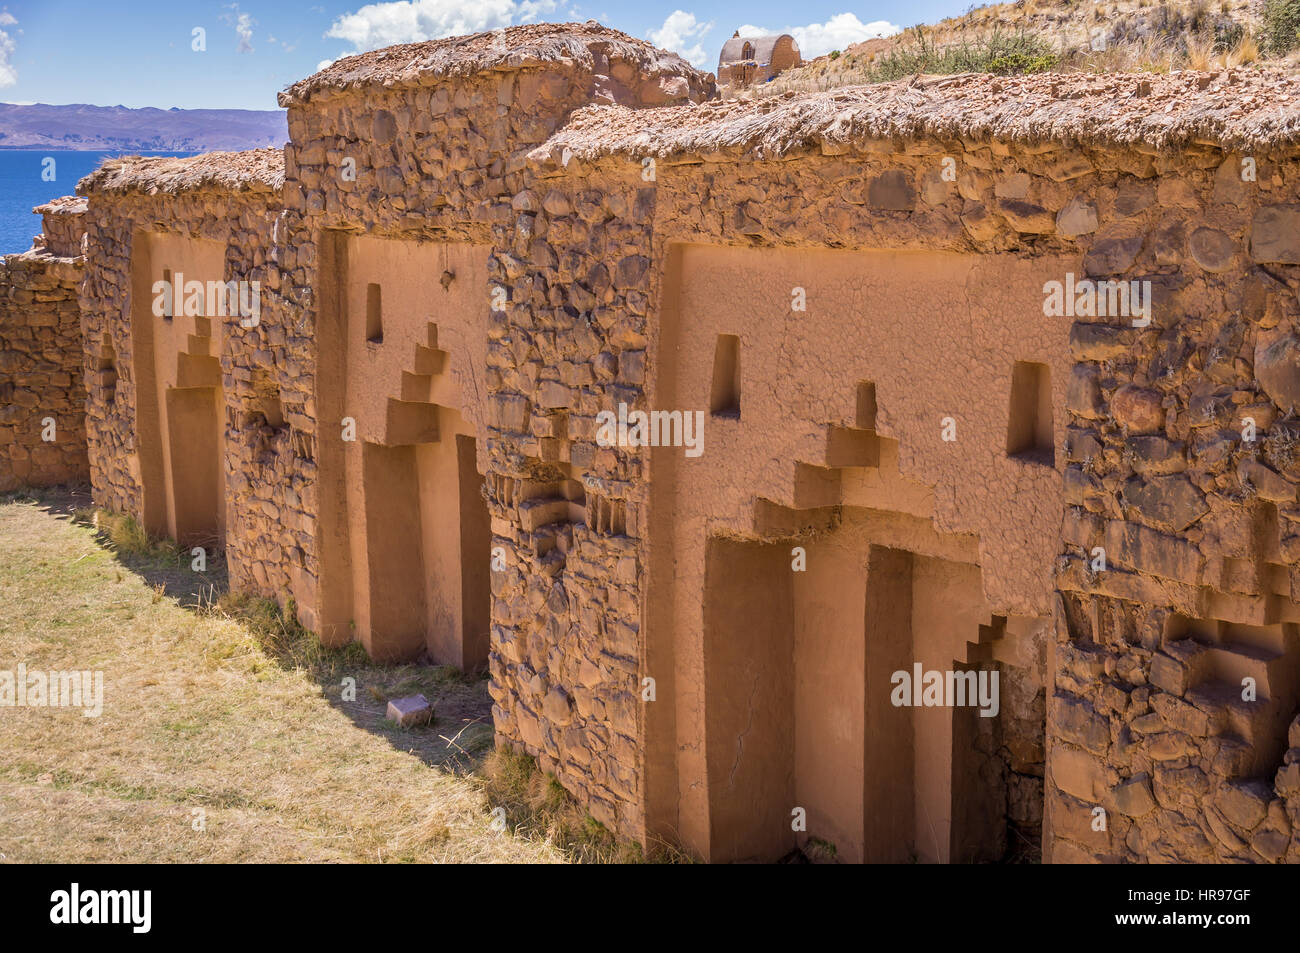 Detail of Inca ruins of Temple of the Virgins of the sun on Isla de la Luna, Lake Titicaca, Bolivia. - Stock Image